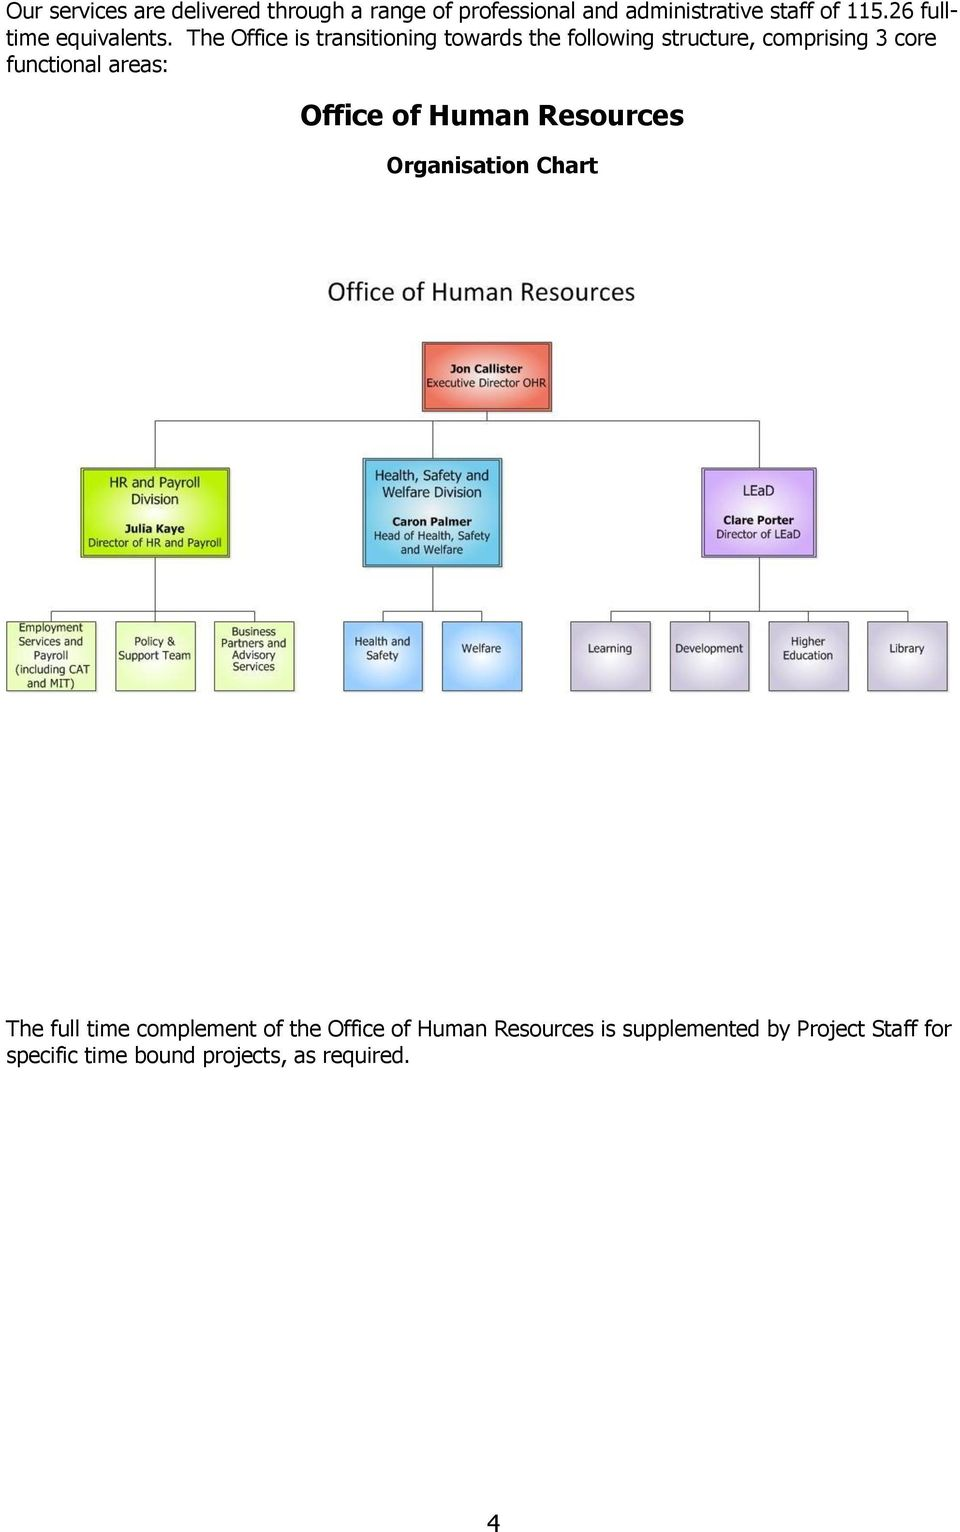 The Office is transitioning towards the following structure, comprising 3 core functional areas: